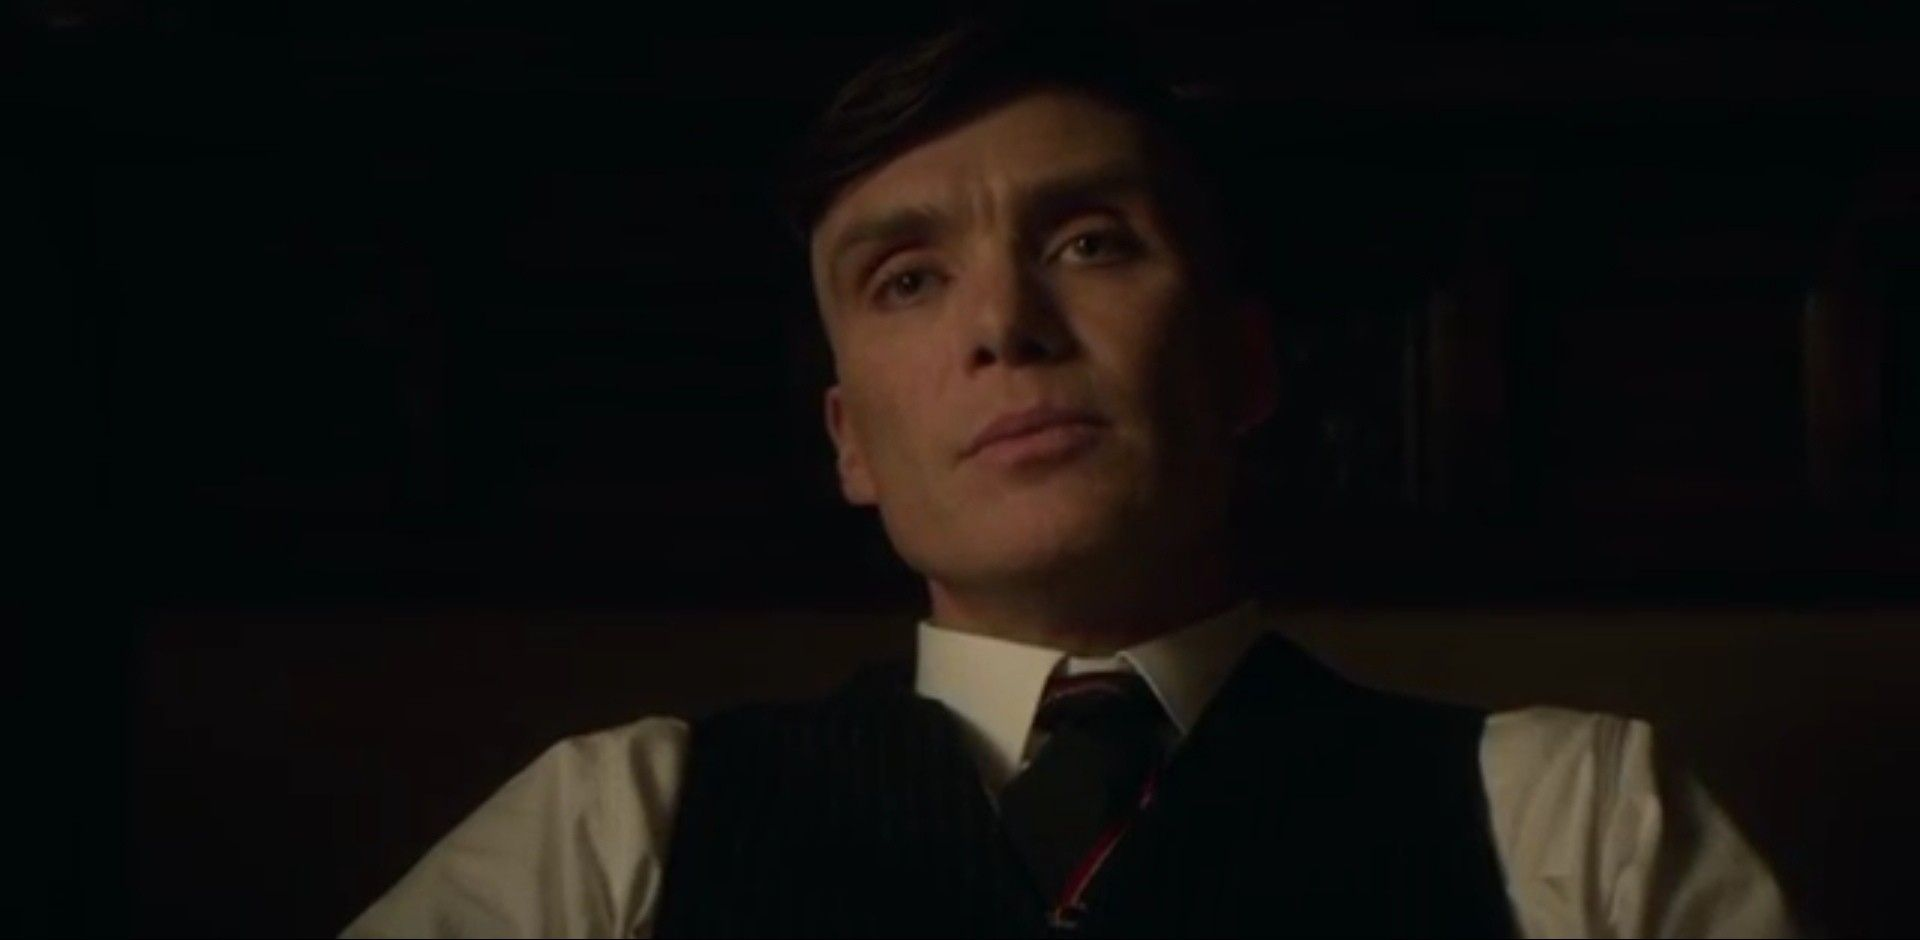 Season 5 Episode 1 Peaky Blinders Angel Face Movies Showing